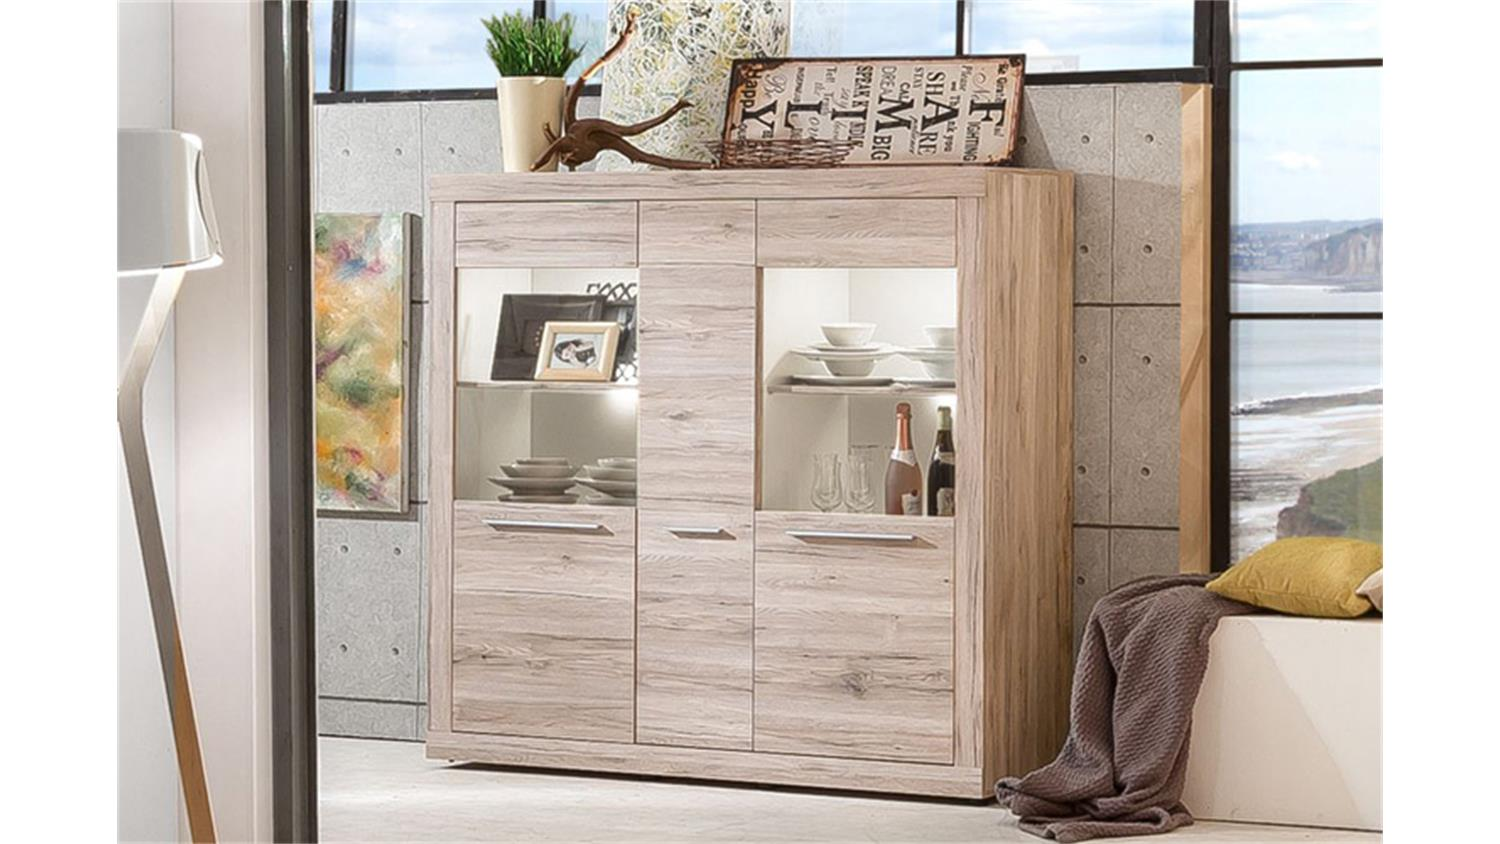 highboard passat schrank vitrine eiche sand mit glast ren. Black Bedroom Furniture Sets. Home Design Ideas